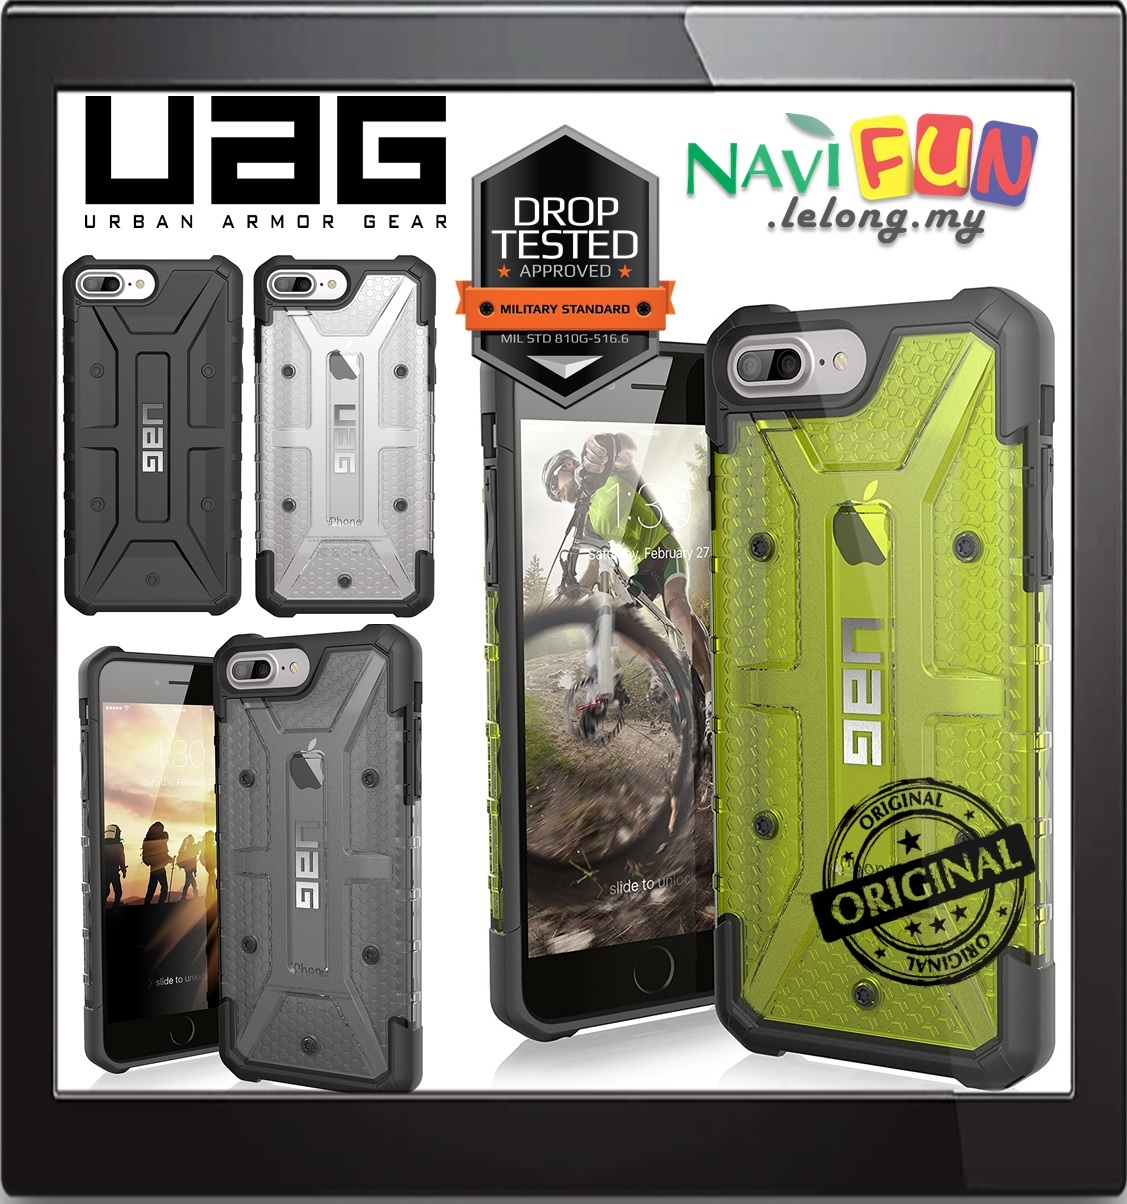 Galaxy s6 cases shop samsung cases online uag urban armor gear - Urban Armor Gear Uag Case For Iphone 7 Plus 6s Plus